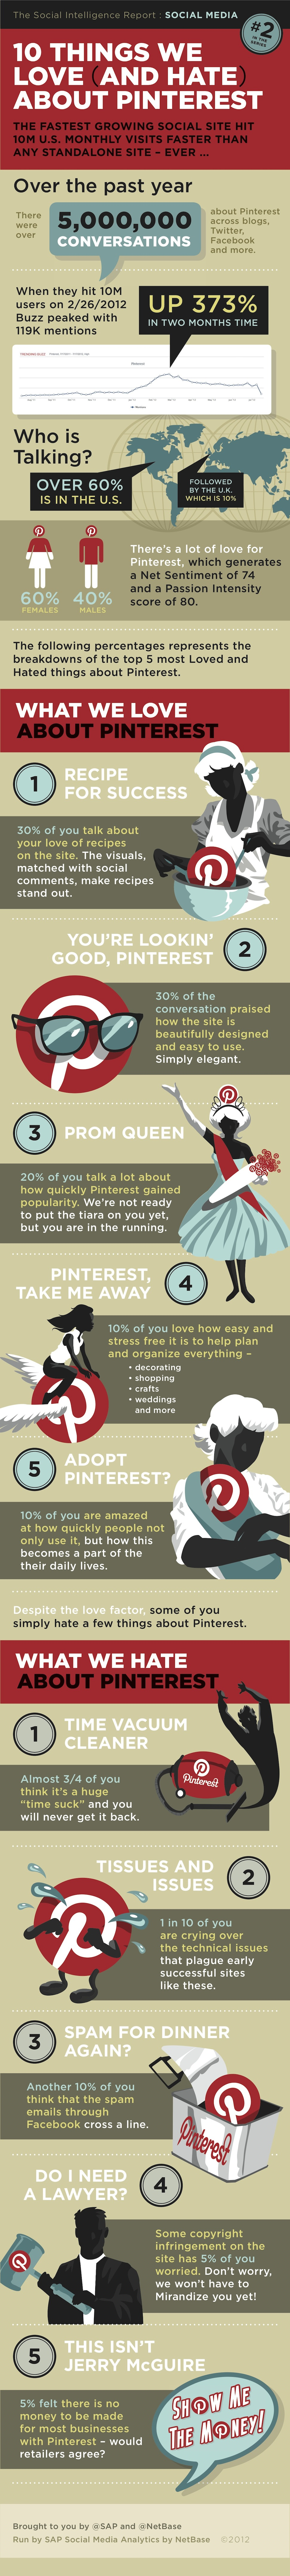 Pinterest-love-hate-infographic